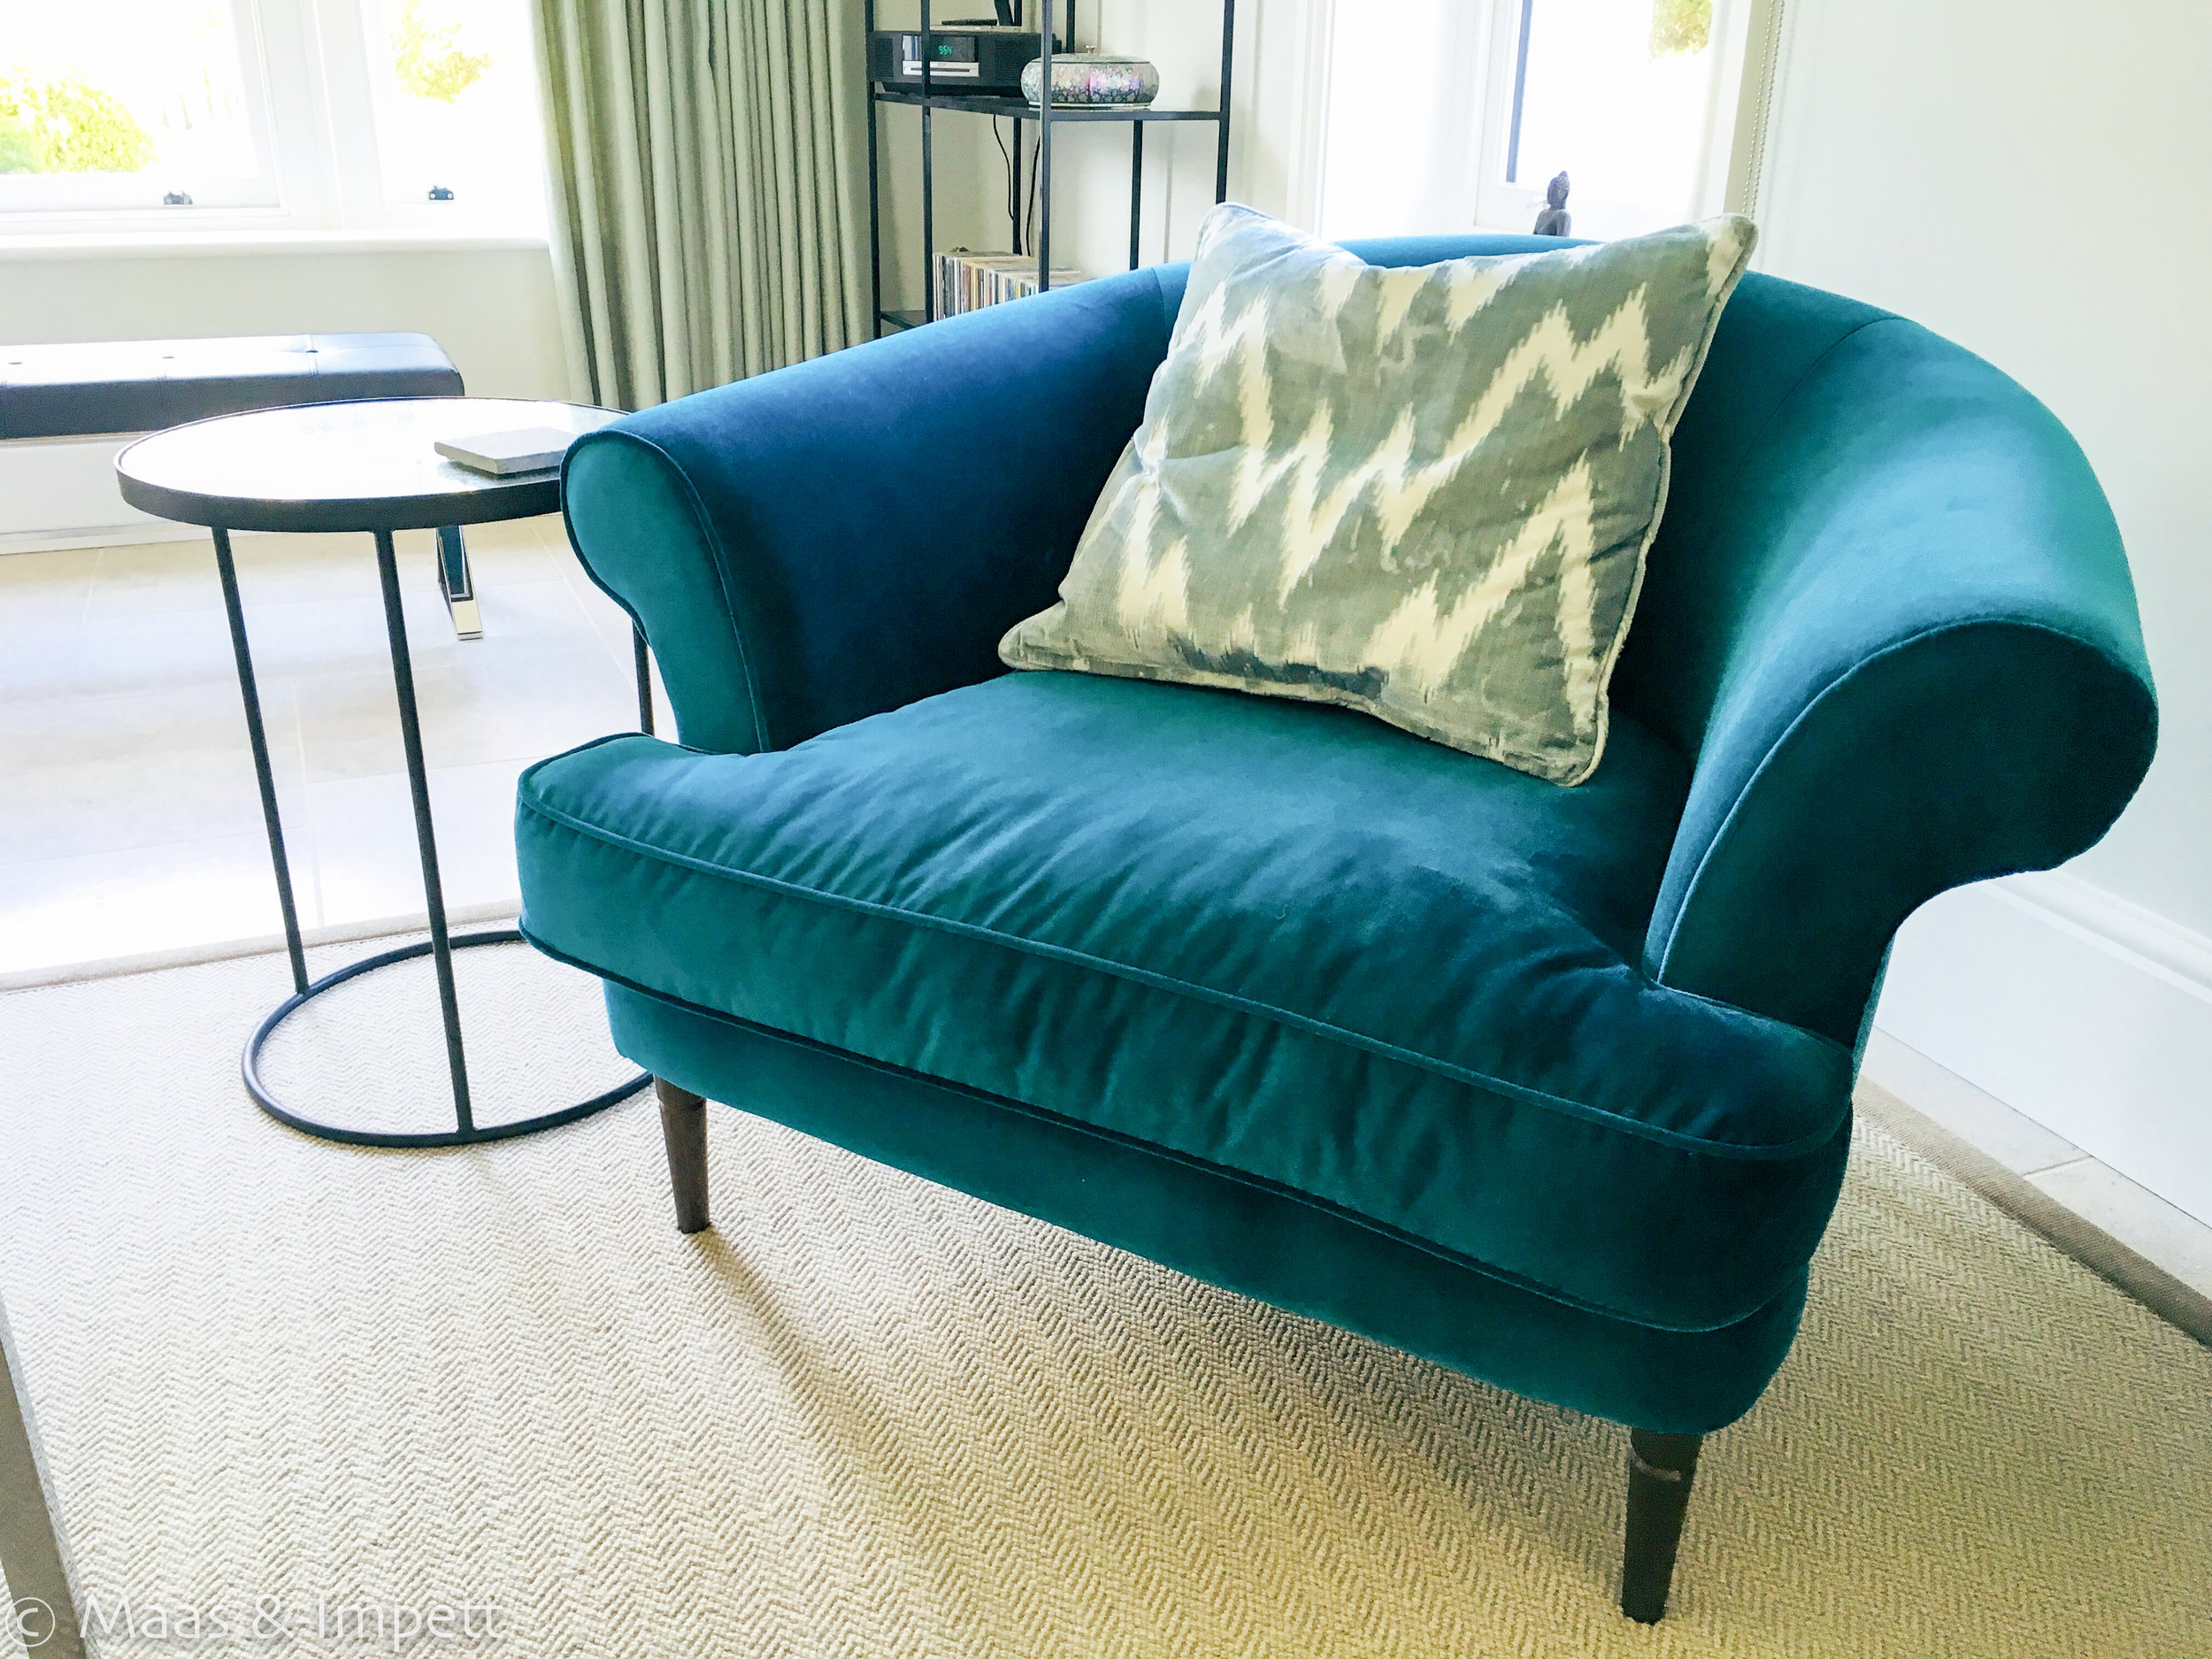 Upholstery by interior designer Maas & Impett